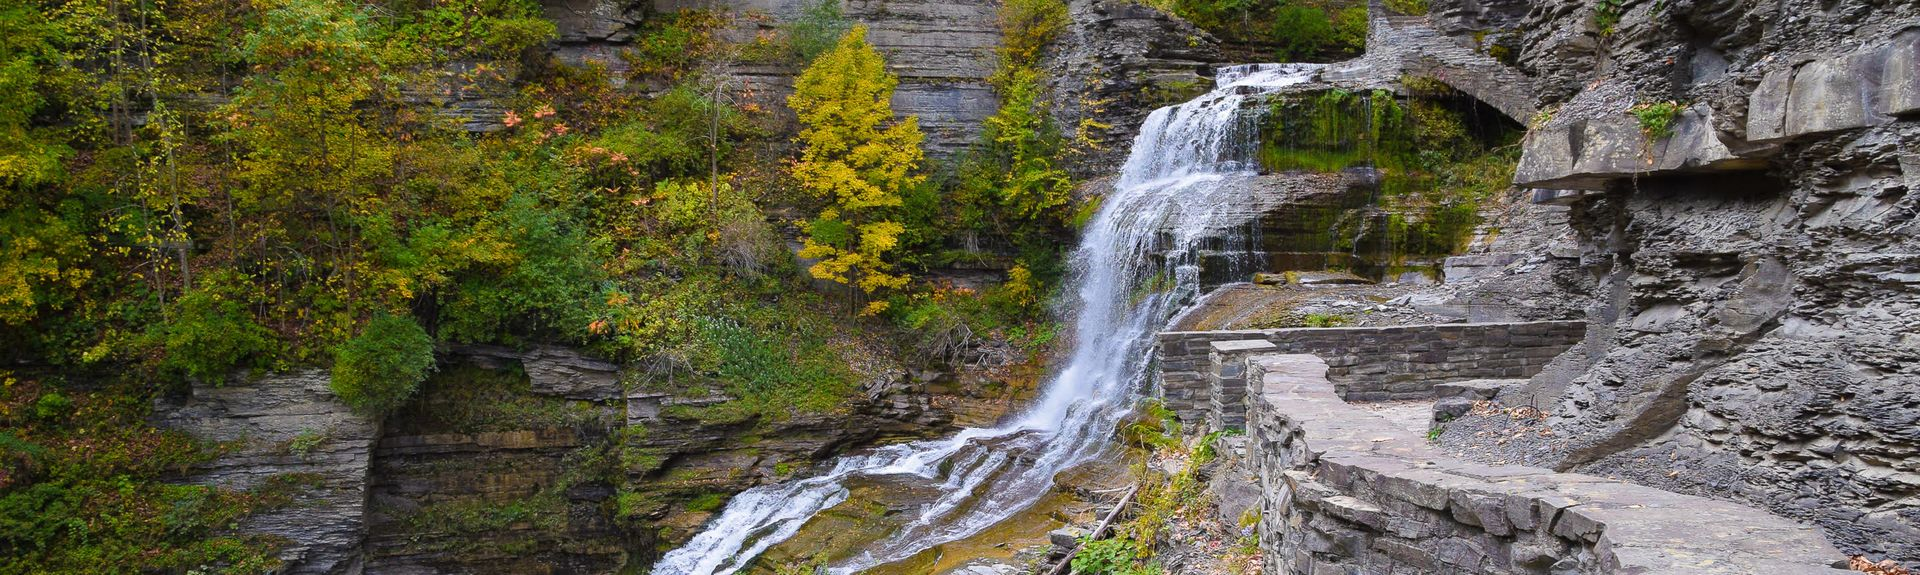 Danby, Ithaca, New York, United States of America